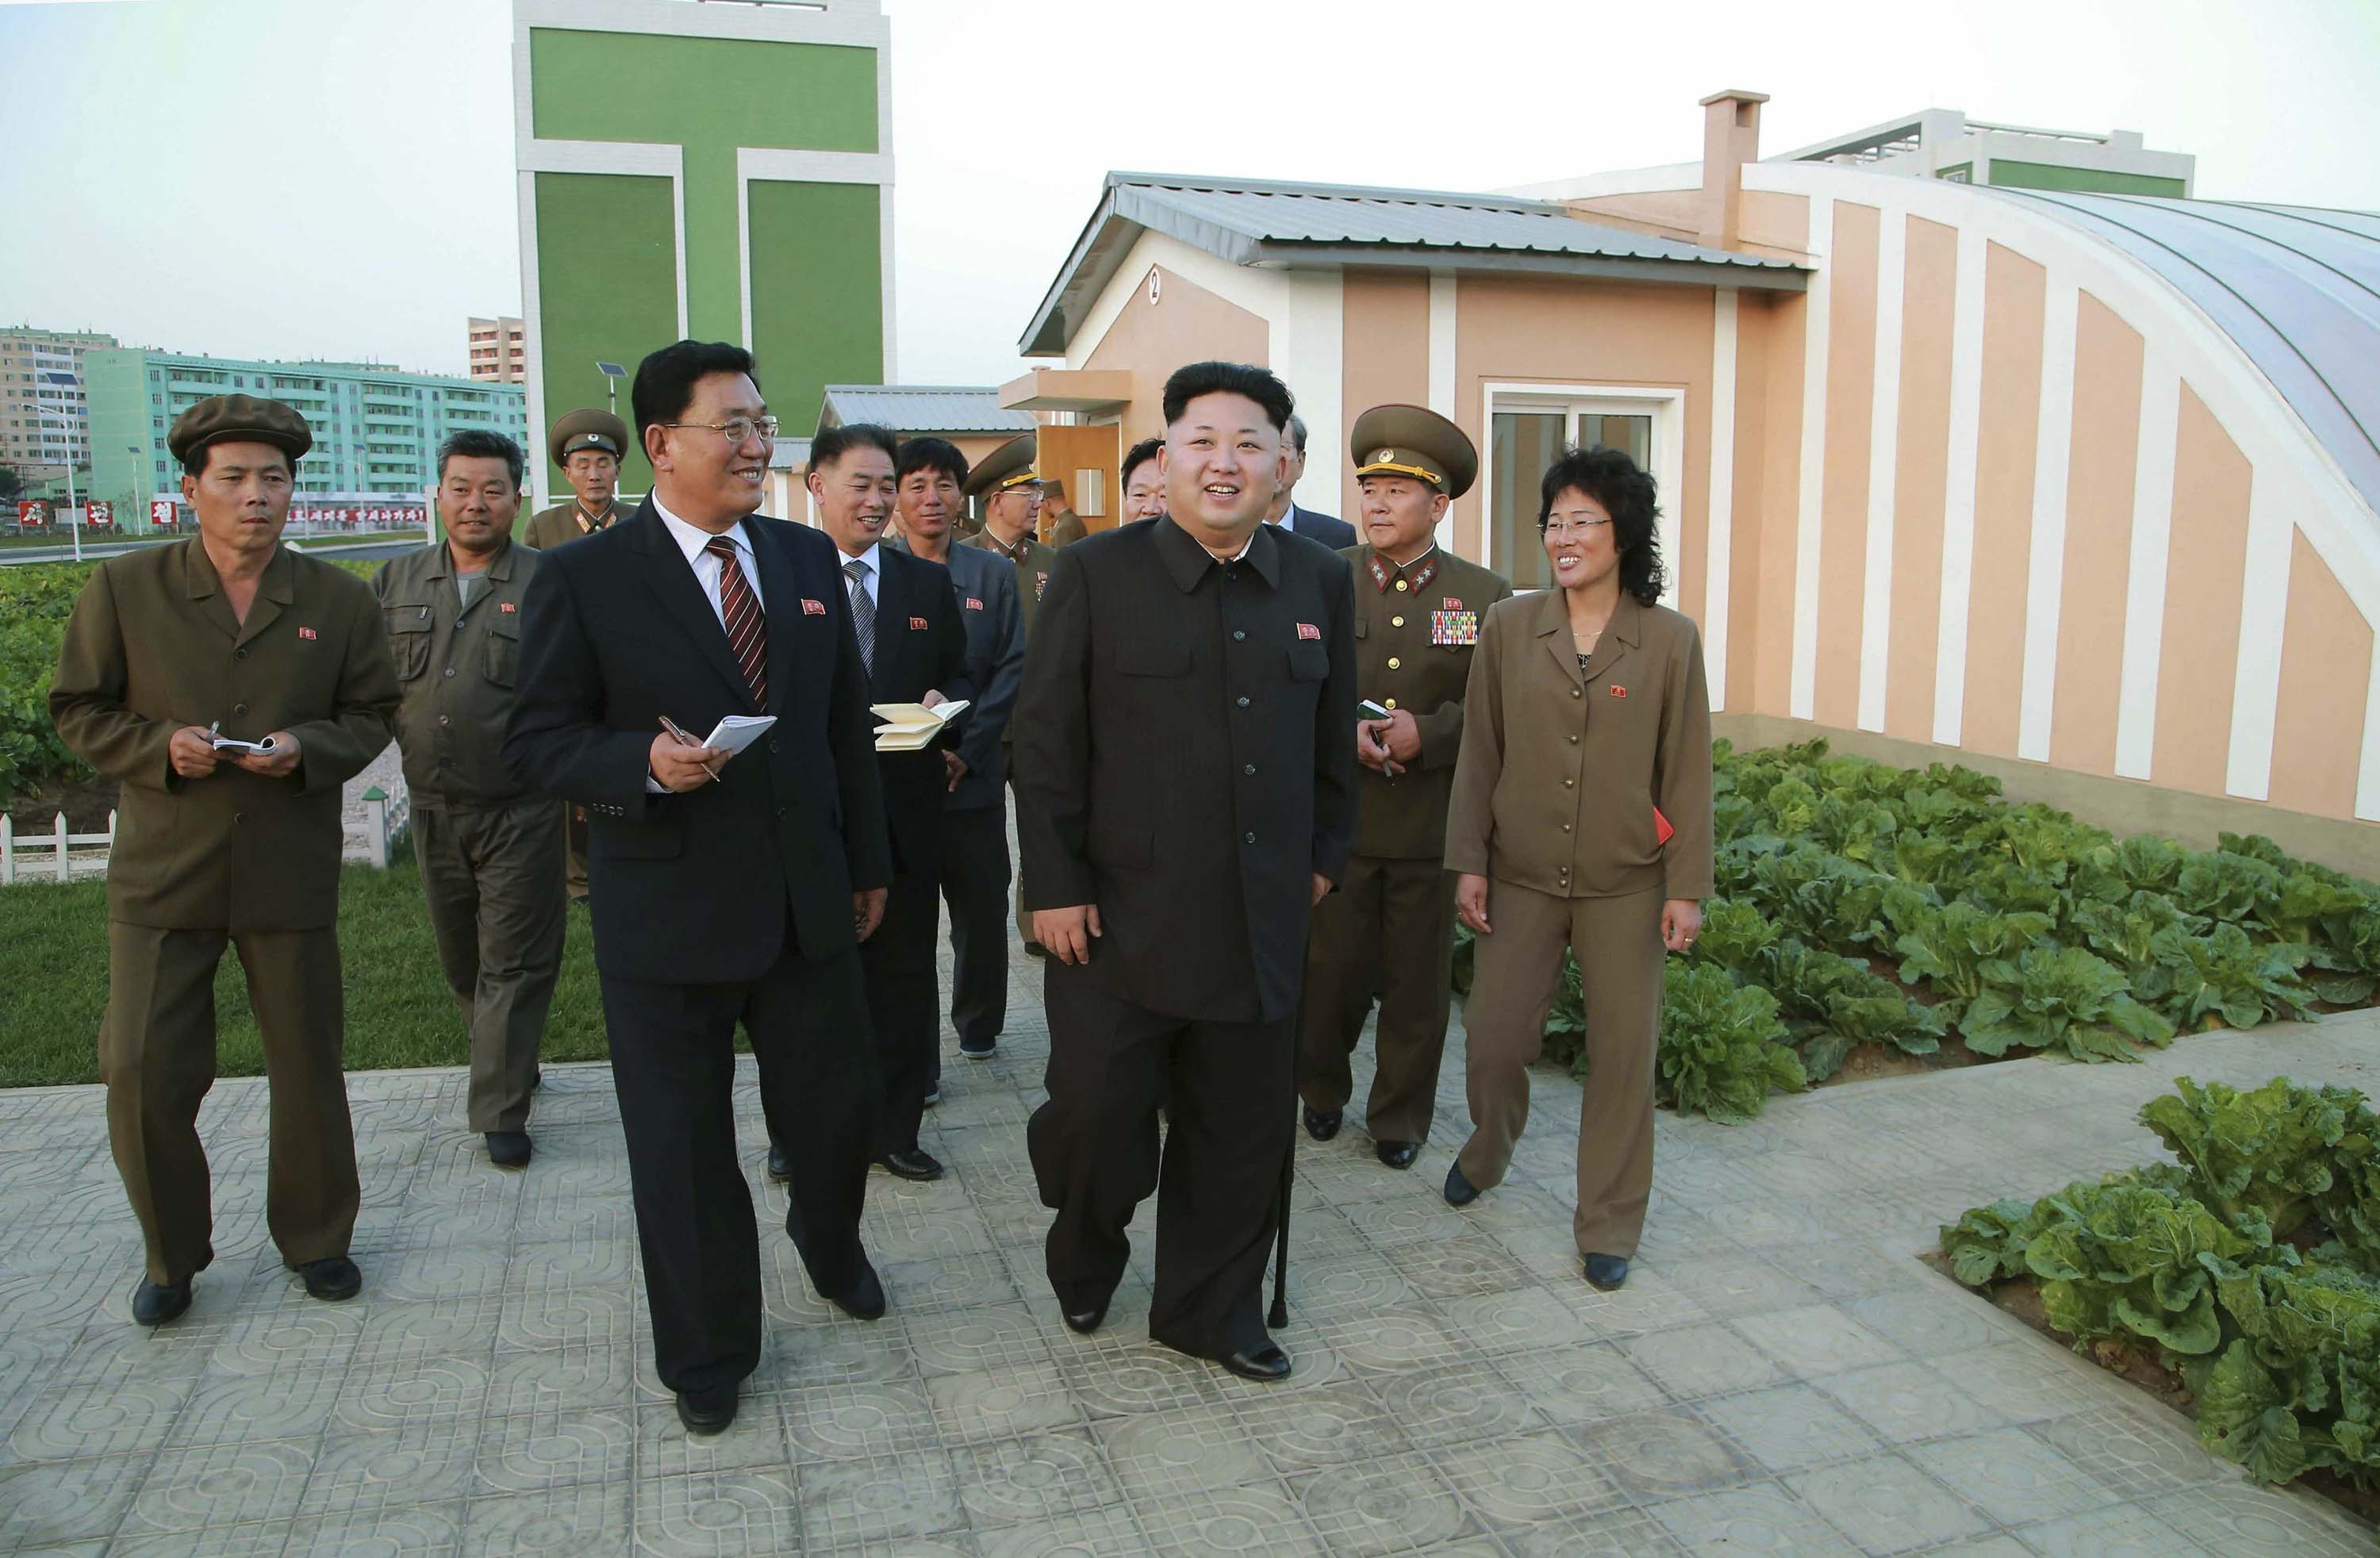 North Korean leader Kim Jong Un gives field guidance at the newly built Wisong Scientists Residential District in Pyongyang.